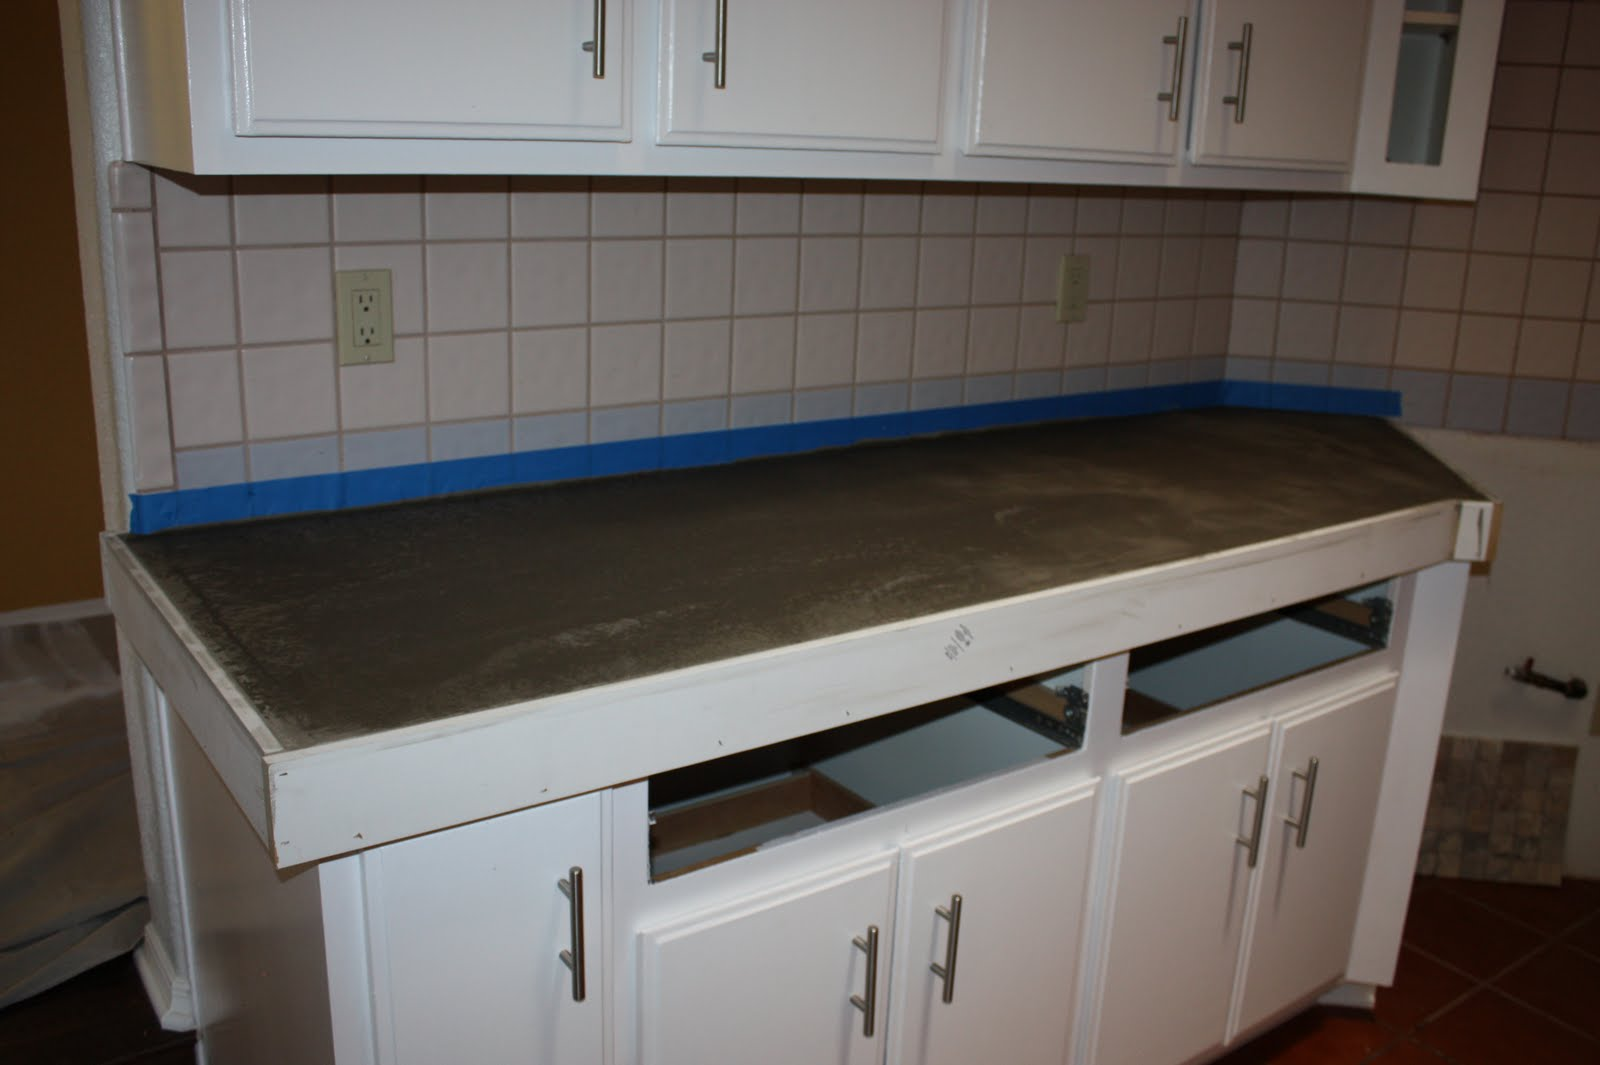 Remodelaholic | Quick Install of Concrete Countertops! Kitchen ...